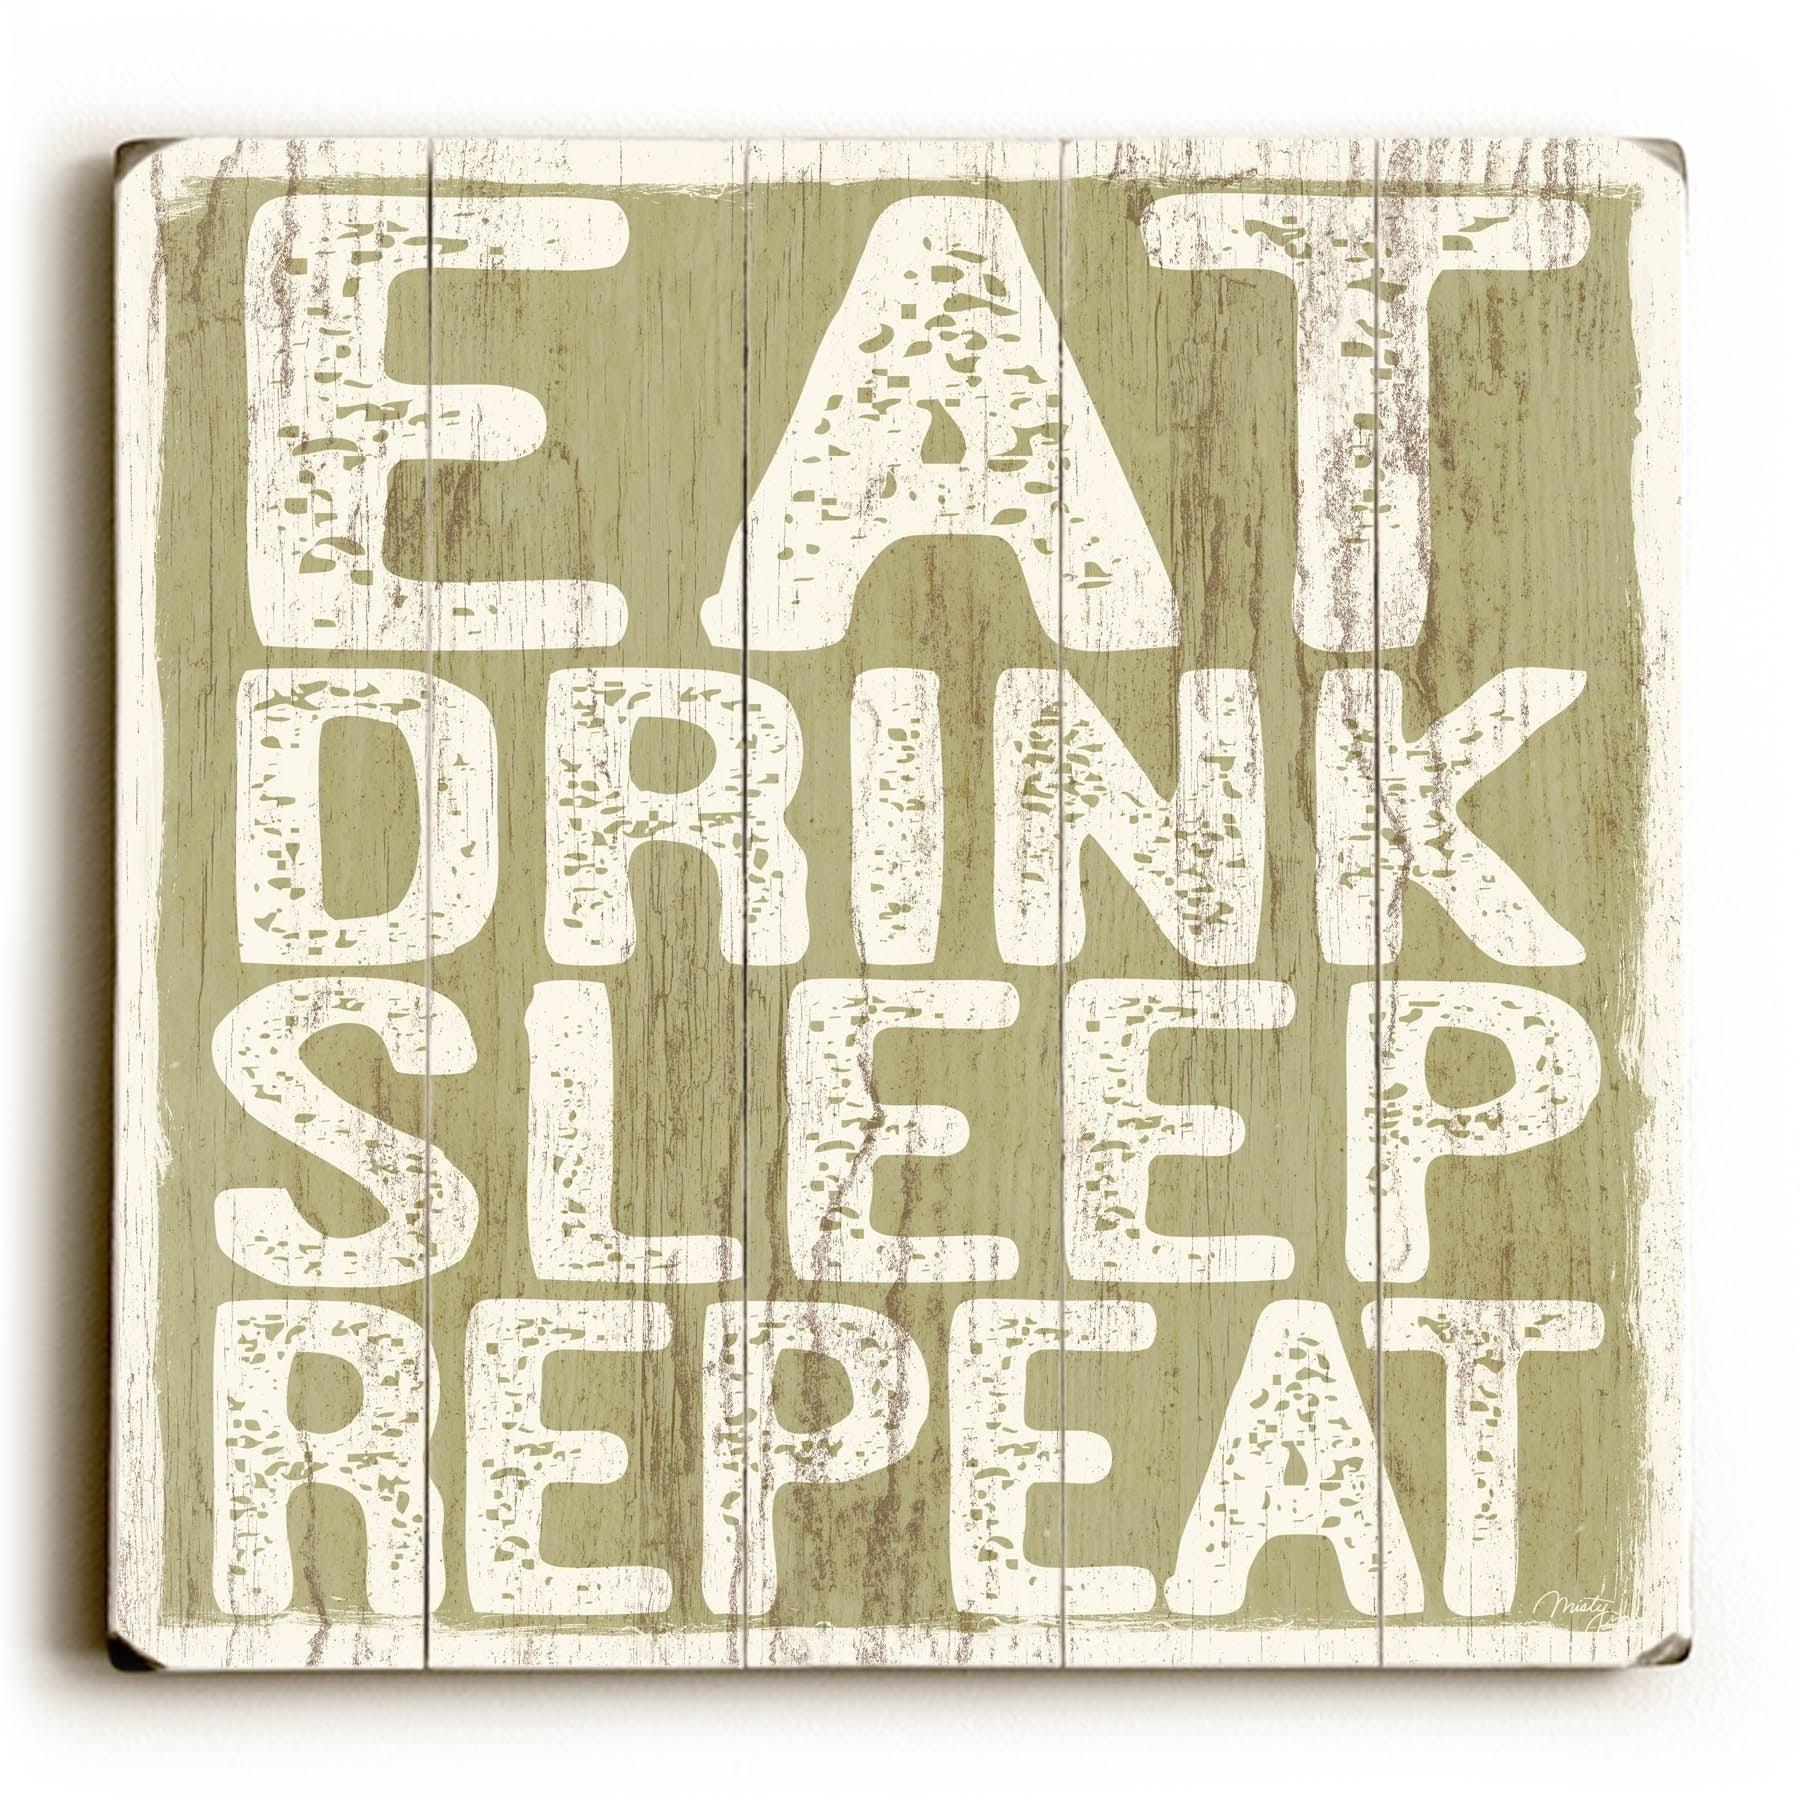 Shop Eat Drink Sleep Repeat Planked Wood Wall Decor By Misty Diller Overstock 22815866